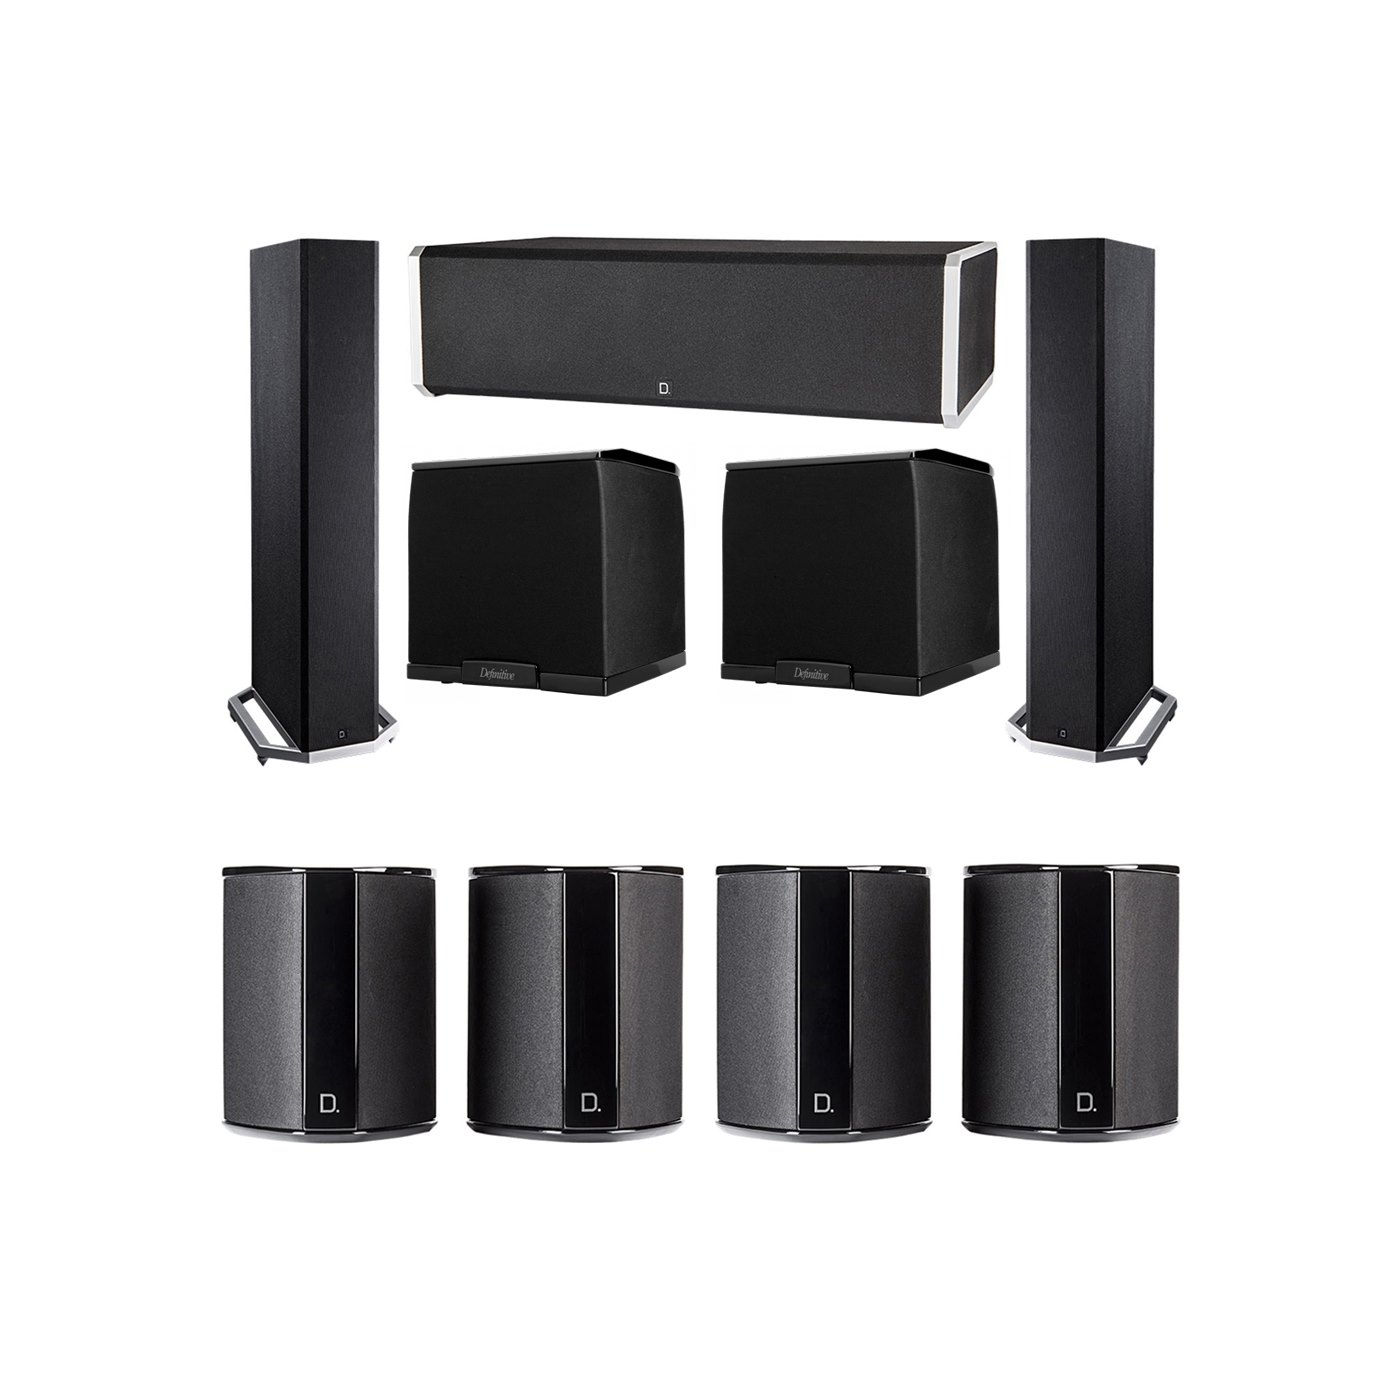 Definitive Technology 7.2 System with 2 BP9020 Tower Speakers, 1 CS9060 Center Channel Speaker, 4 SR9040 Surround Speaker, 2 Definitive Technology SuperCube 2000 Powered Subwoofer